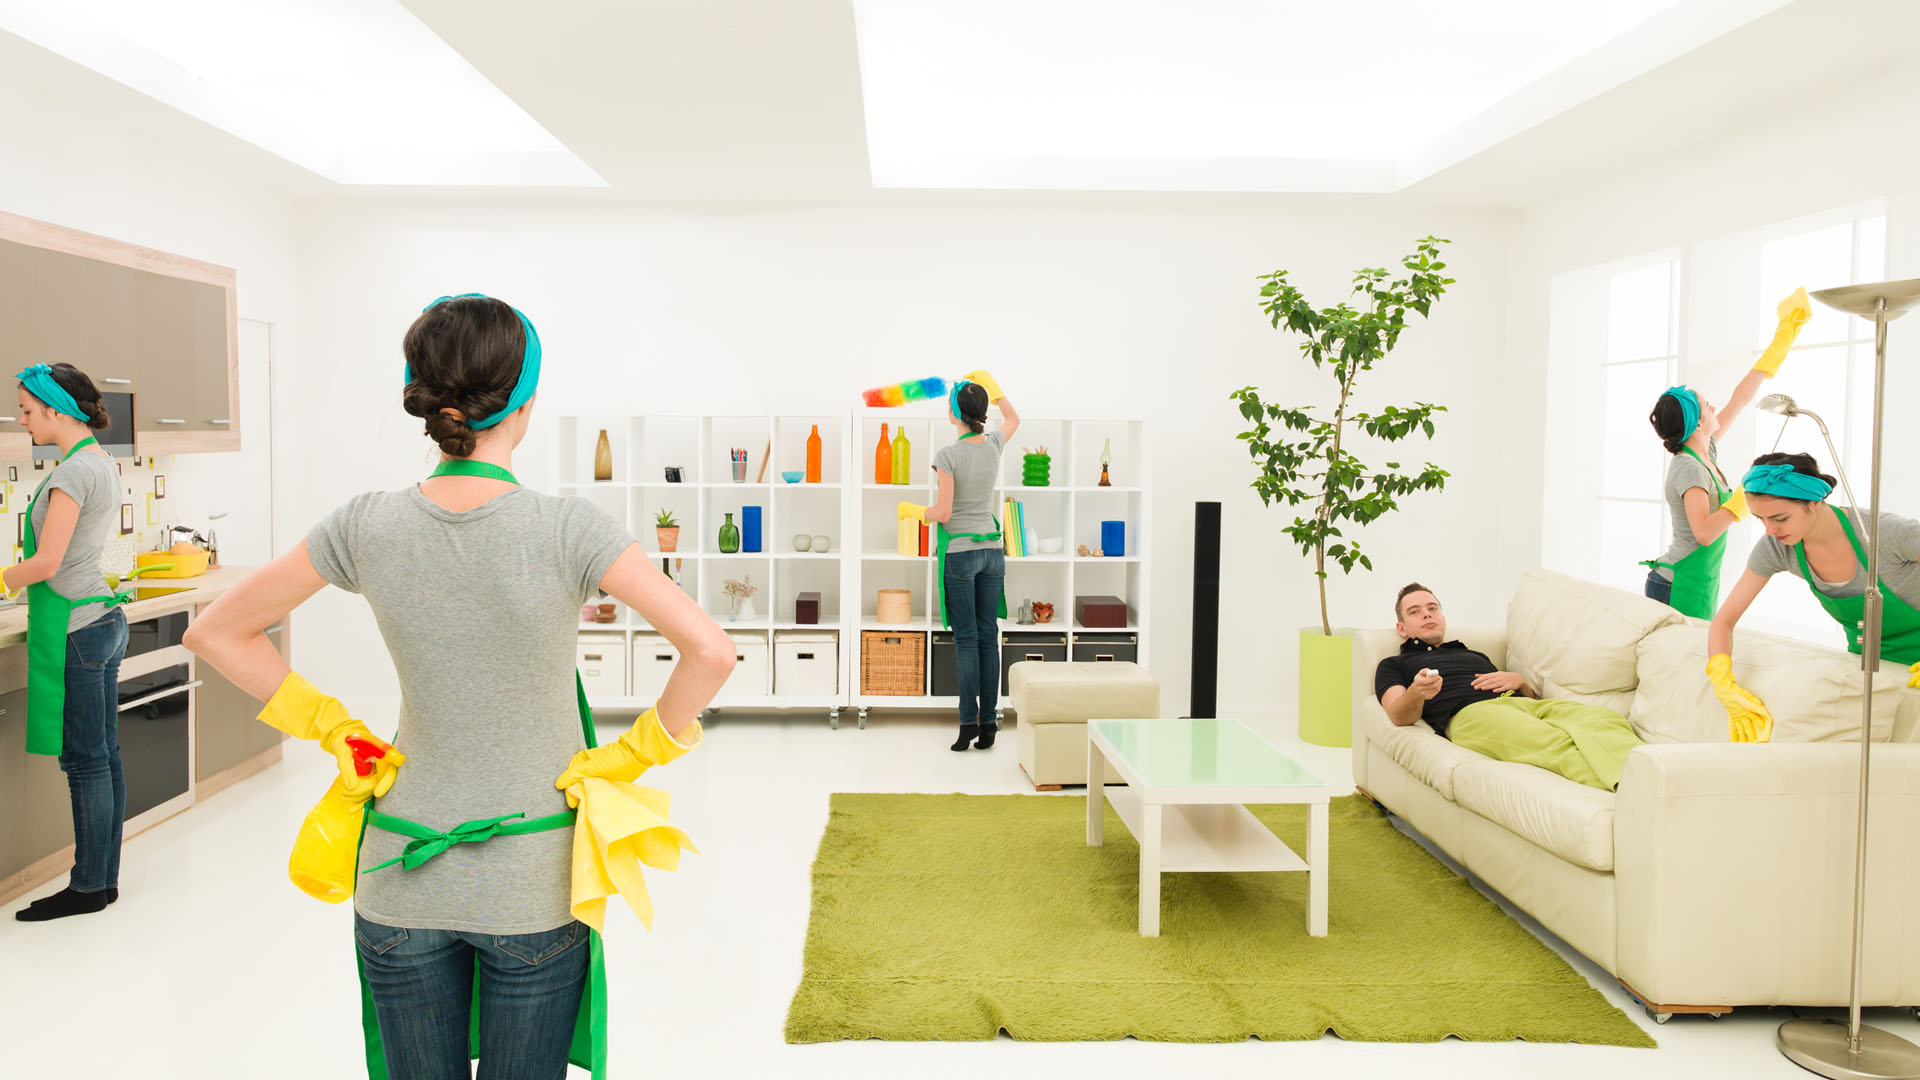 SPONSORED: 'We Do Wonderful Cleaning' – The YMaidcleaner Story 2